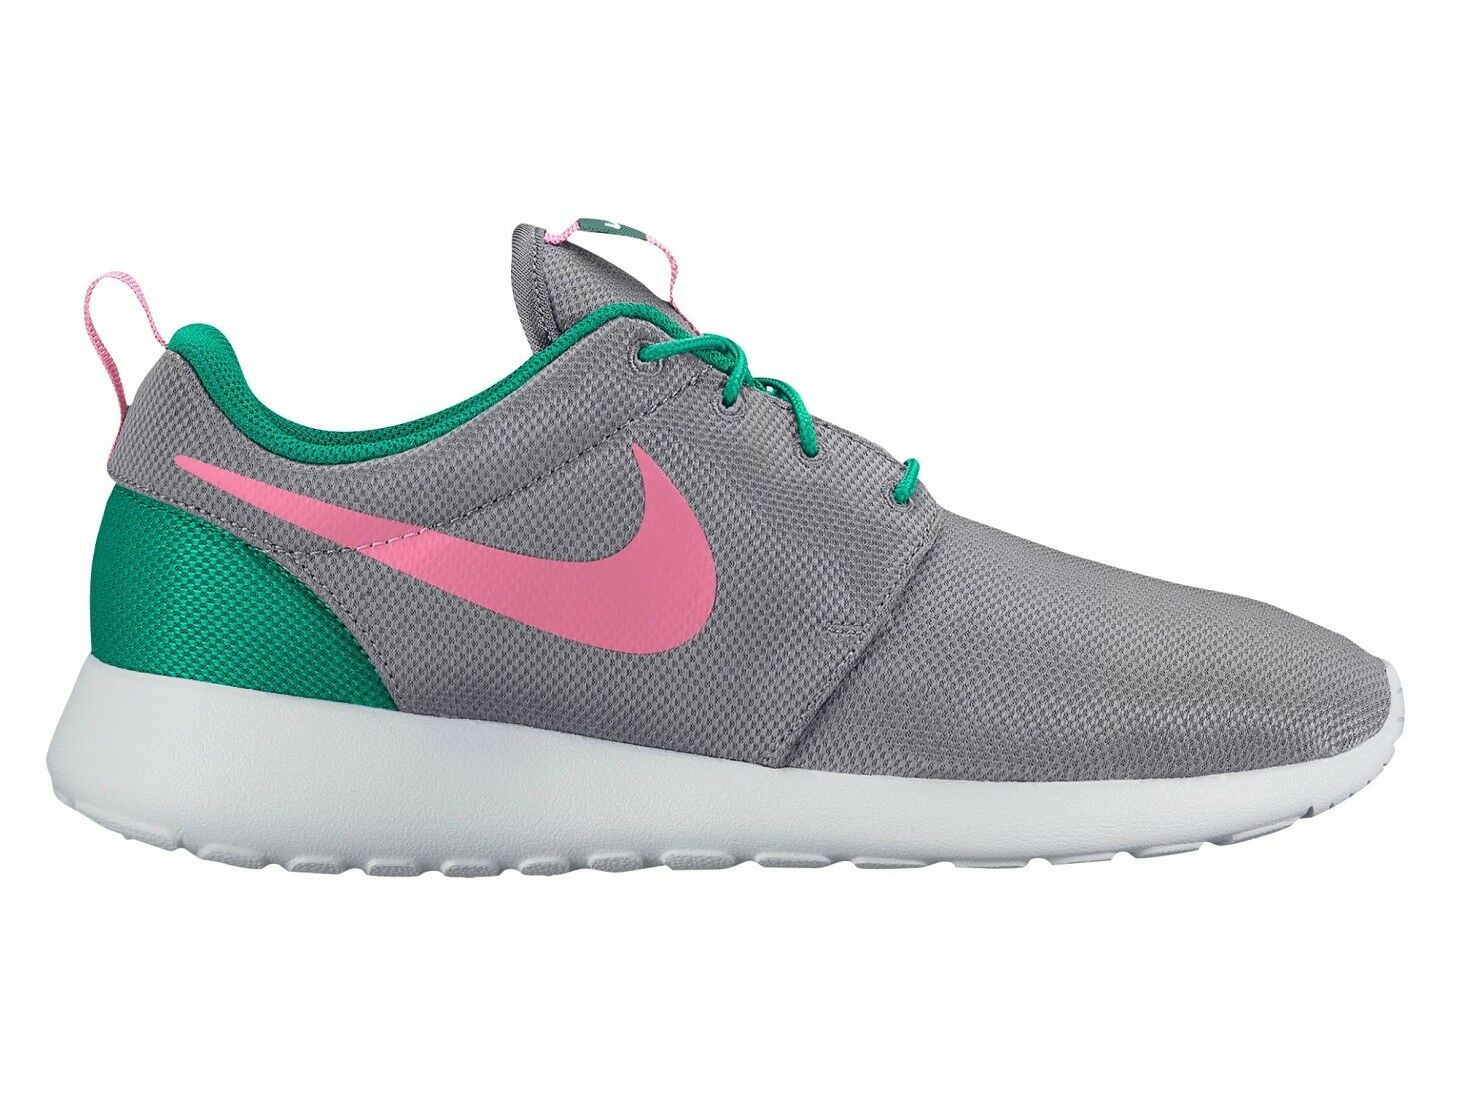 Nike Roshe One Watermelon Mens 511881-036 Grey Green Running shoes Size 9